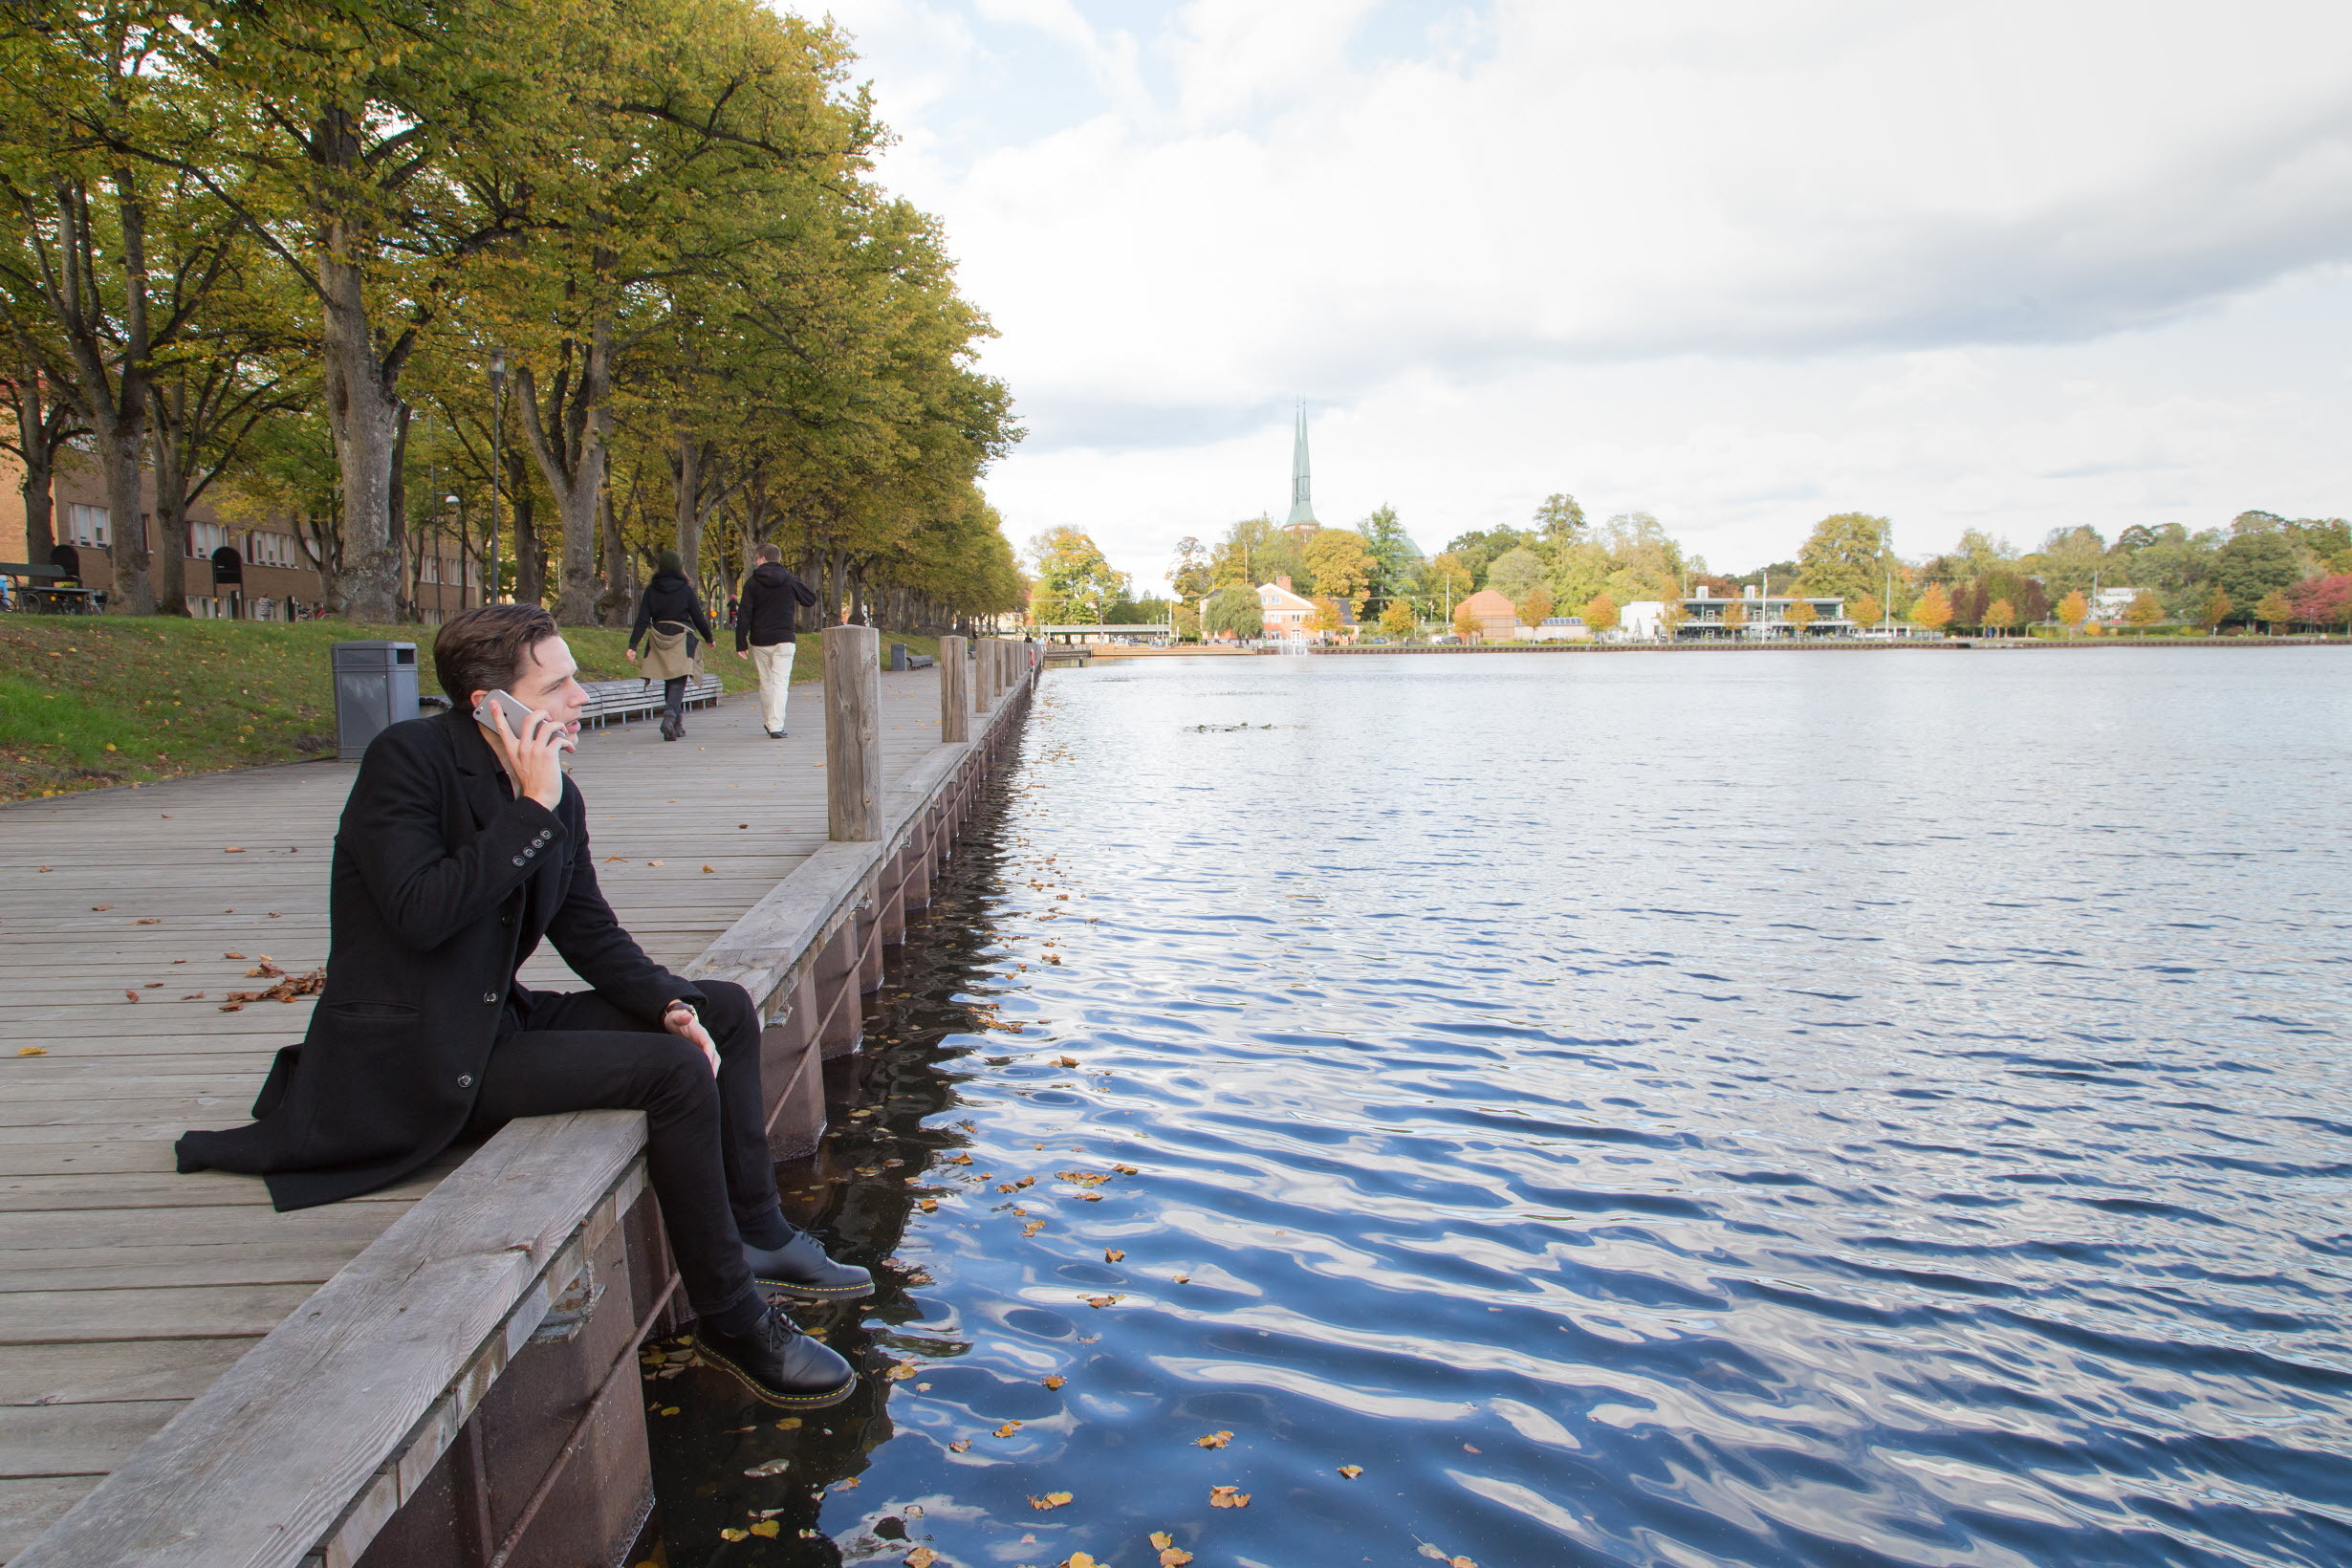 Student talking on the phone by the lake in Växjö